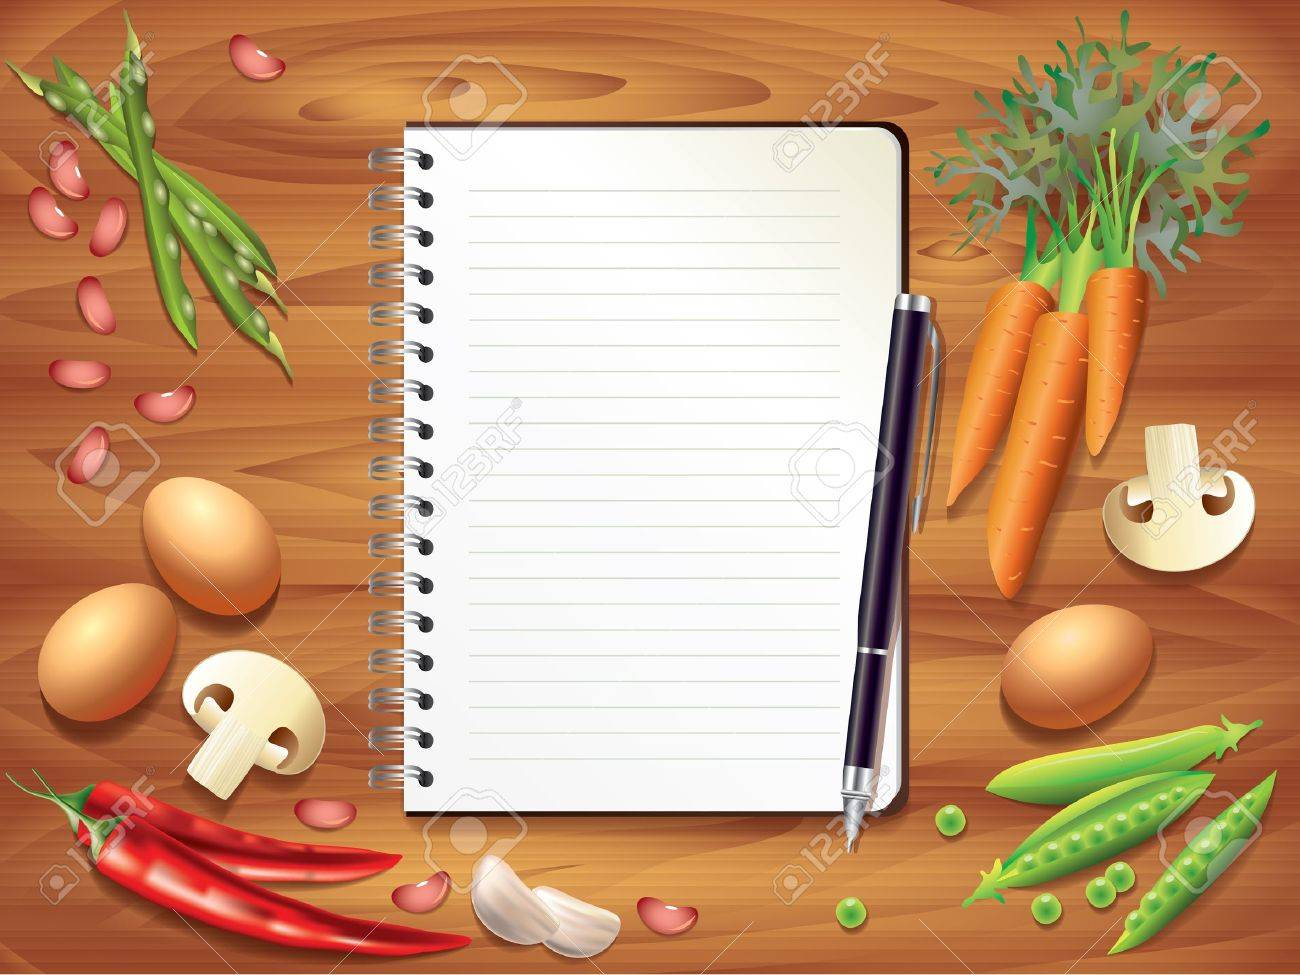 Top View Recipe Book On Wooden Kitchen Table, Food Ingredients Photo  Realistic Stock Vector